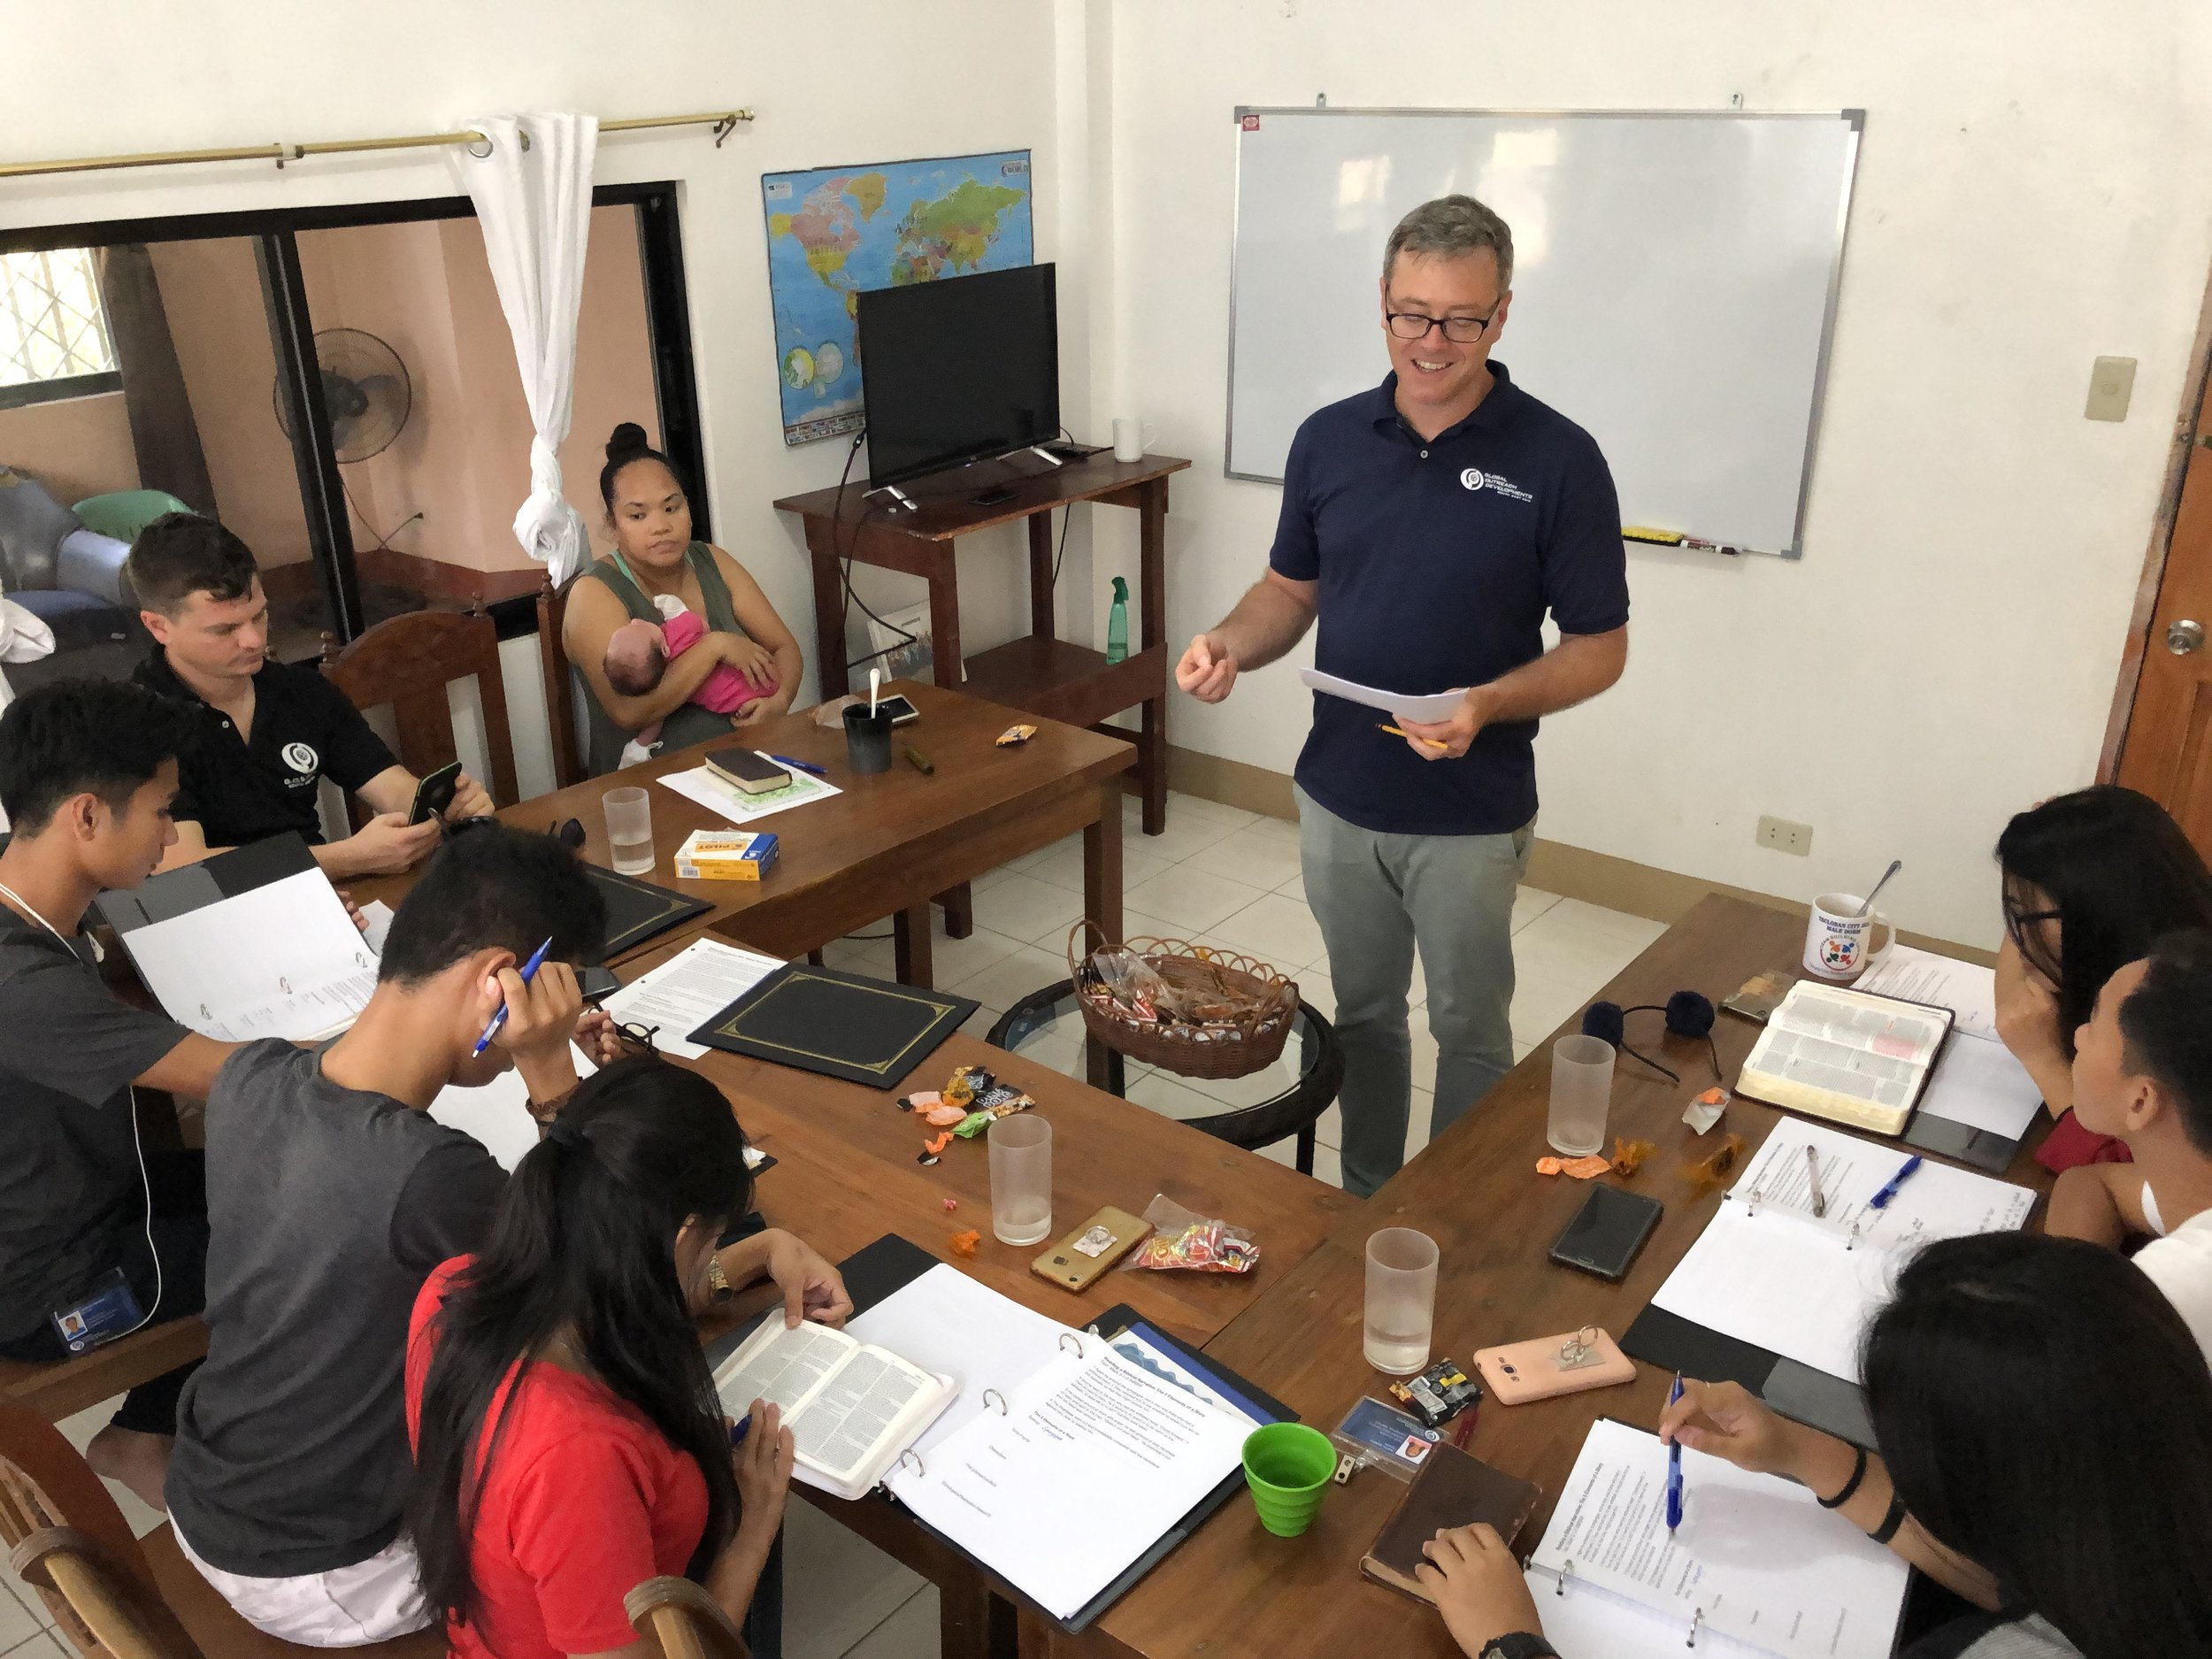 Shaun Galford teaches inductive bible study methods to our SEA interns as part of the internship's Bible education curriculum. Equipping the interns with these tools to study the Word was a major component of the recent delegation trip.